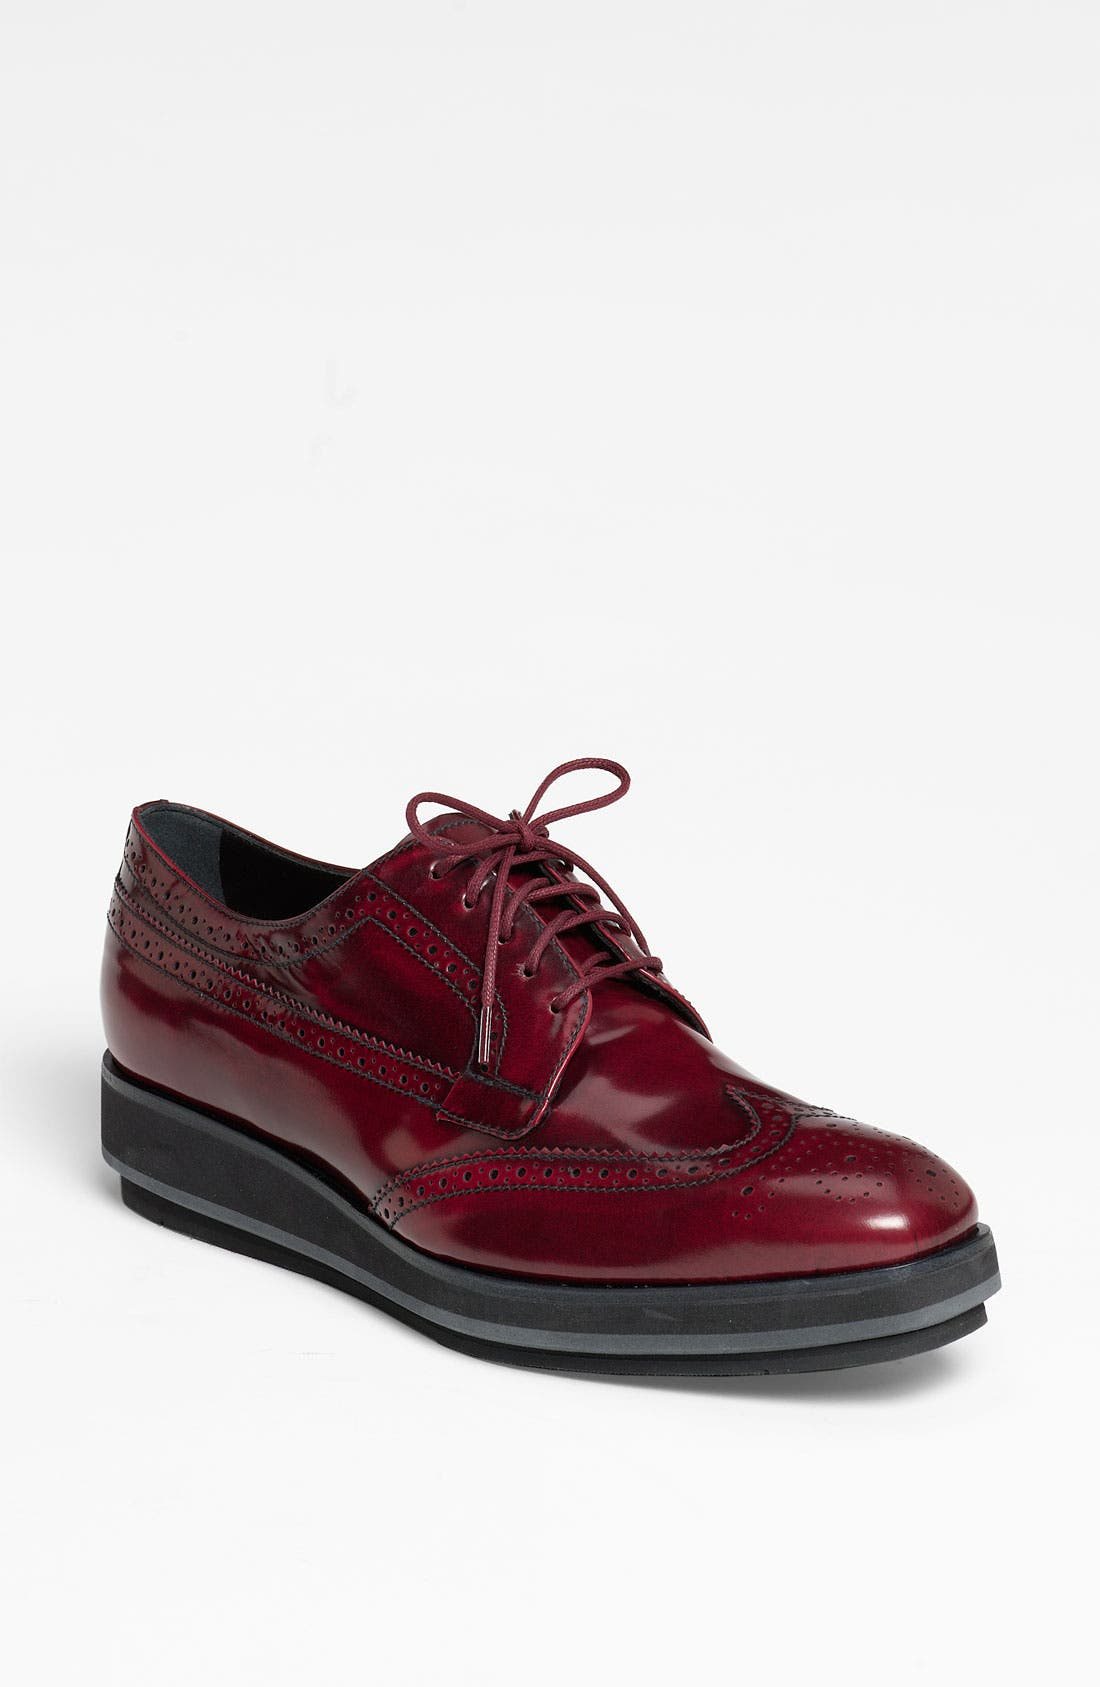 Main Image - Prada Brogue Platform Oxford